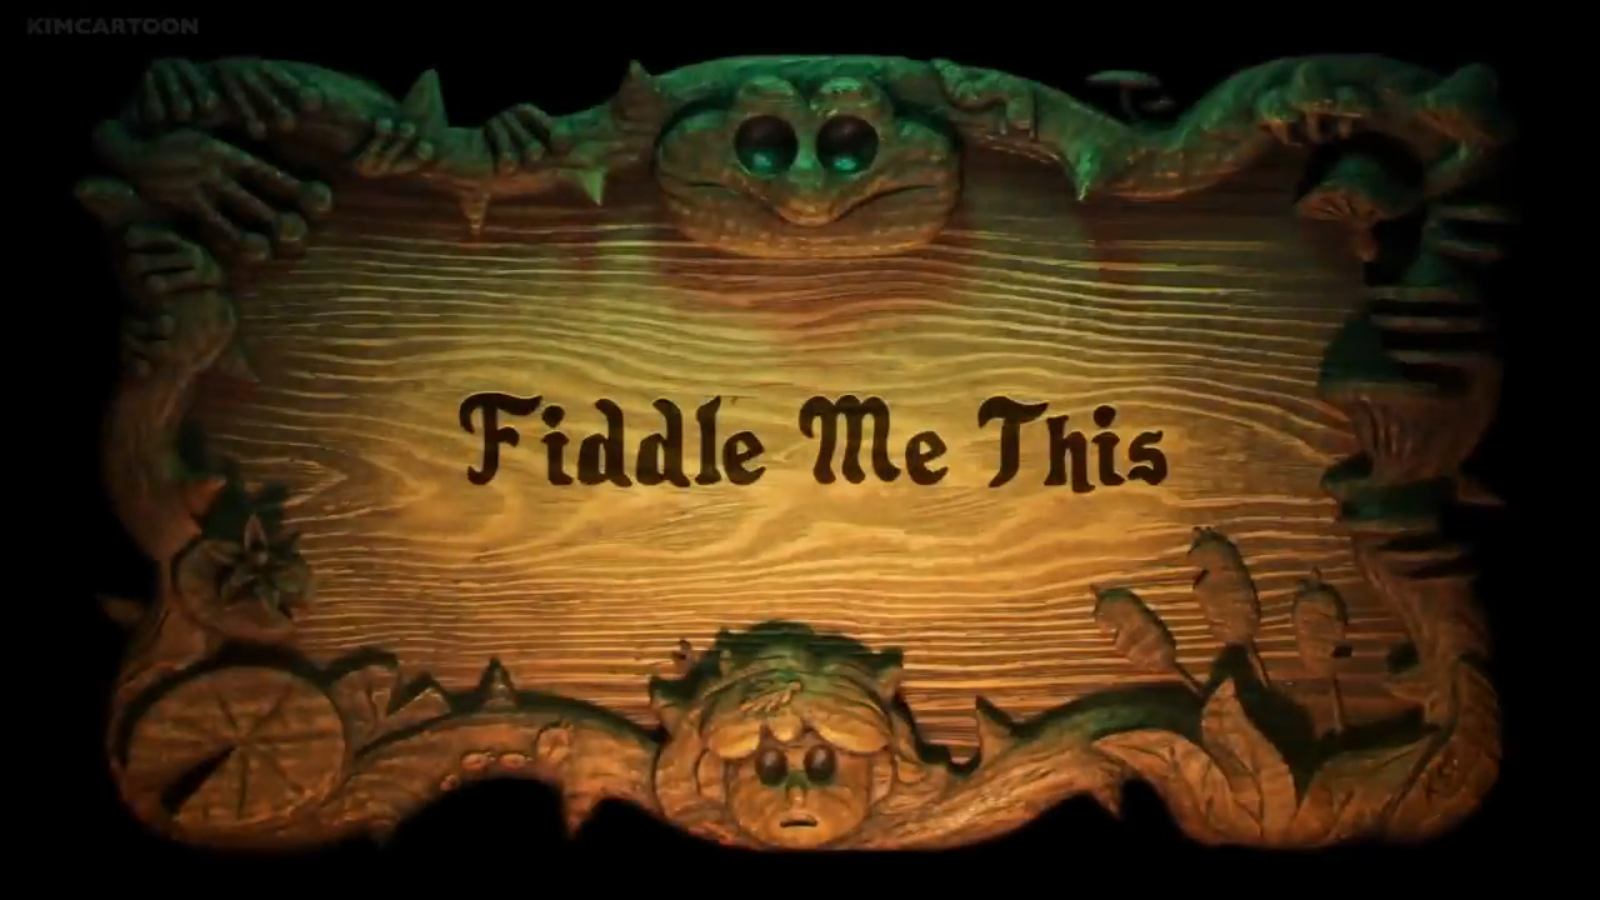 Fiddle Me This